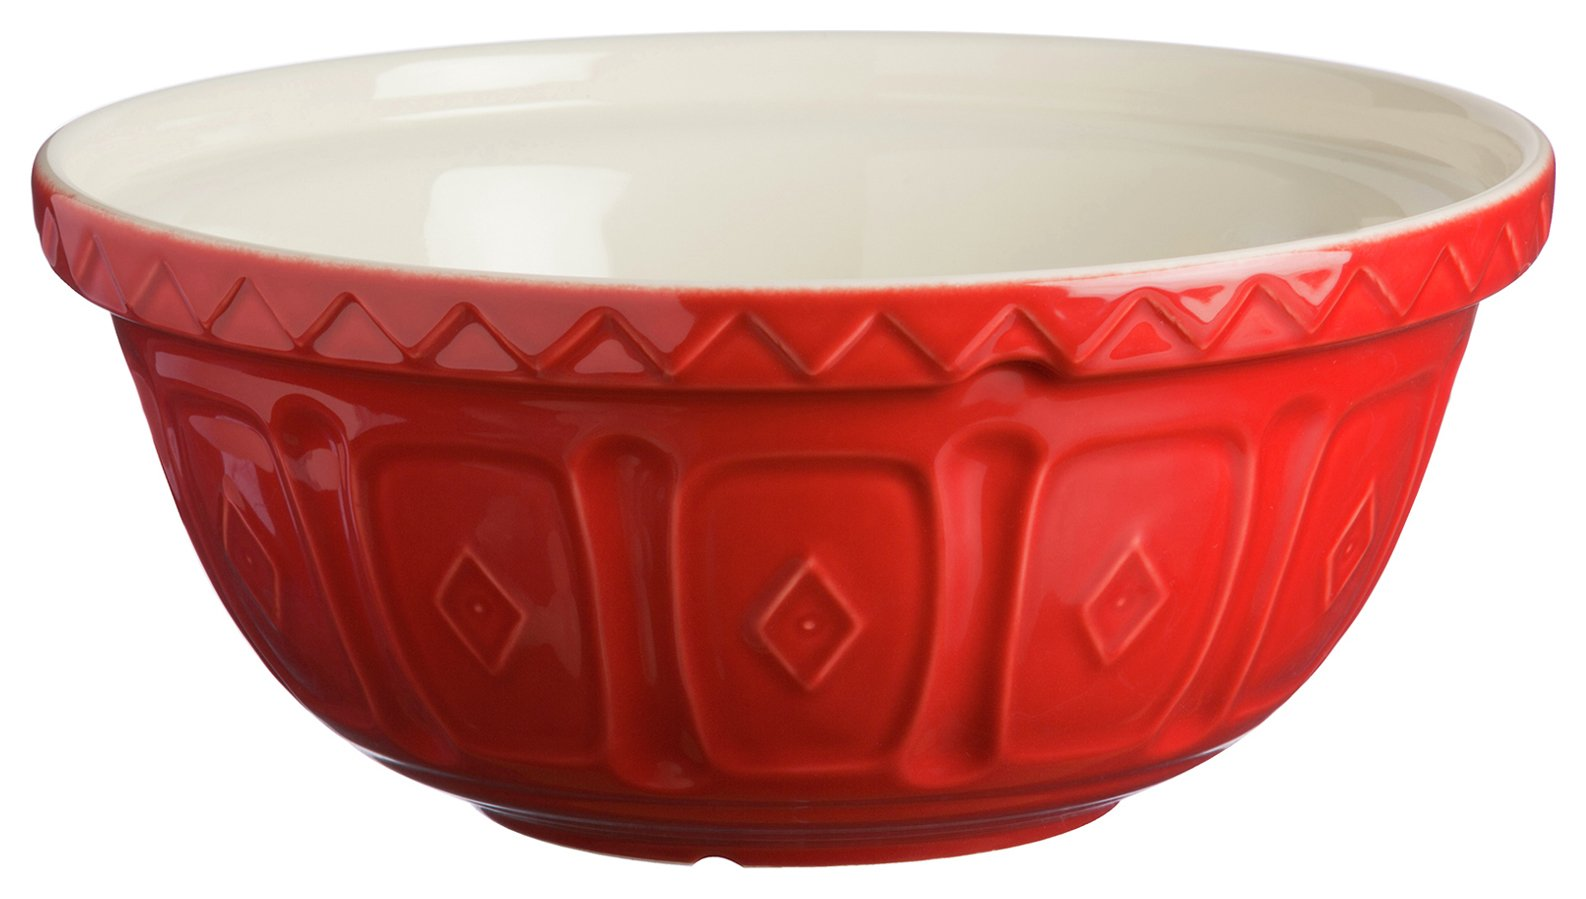 Image of Mason Cash 29cm Red Mixing Bowl.